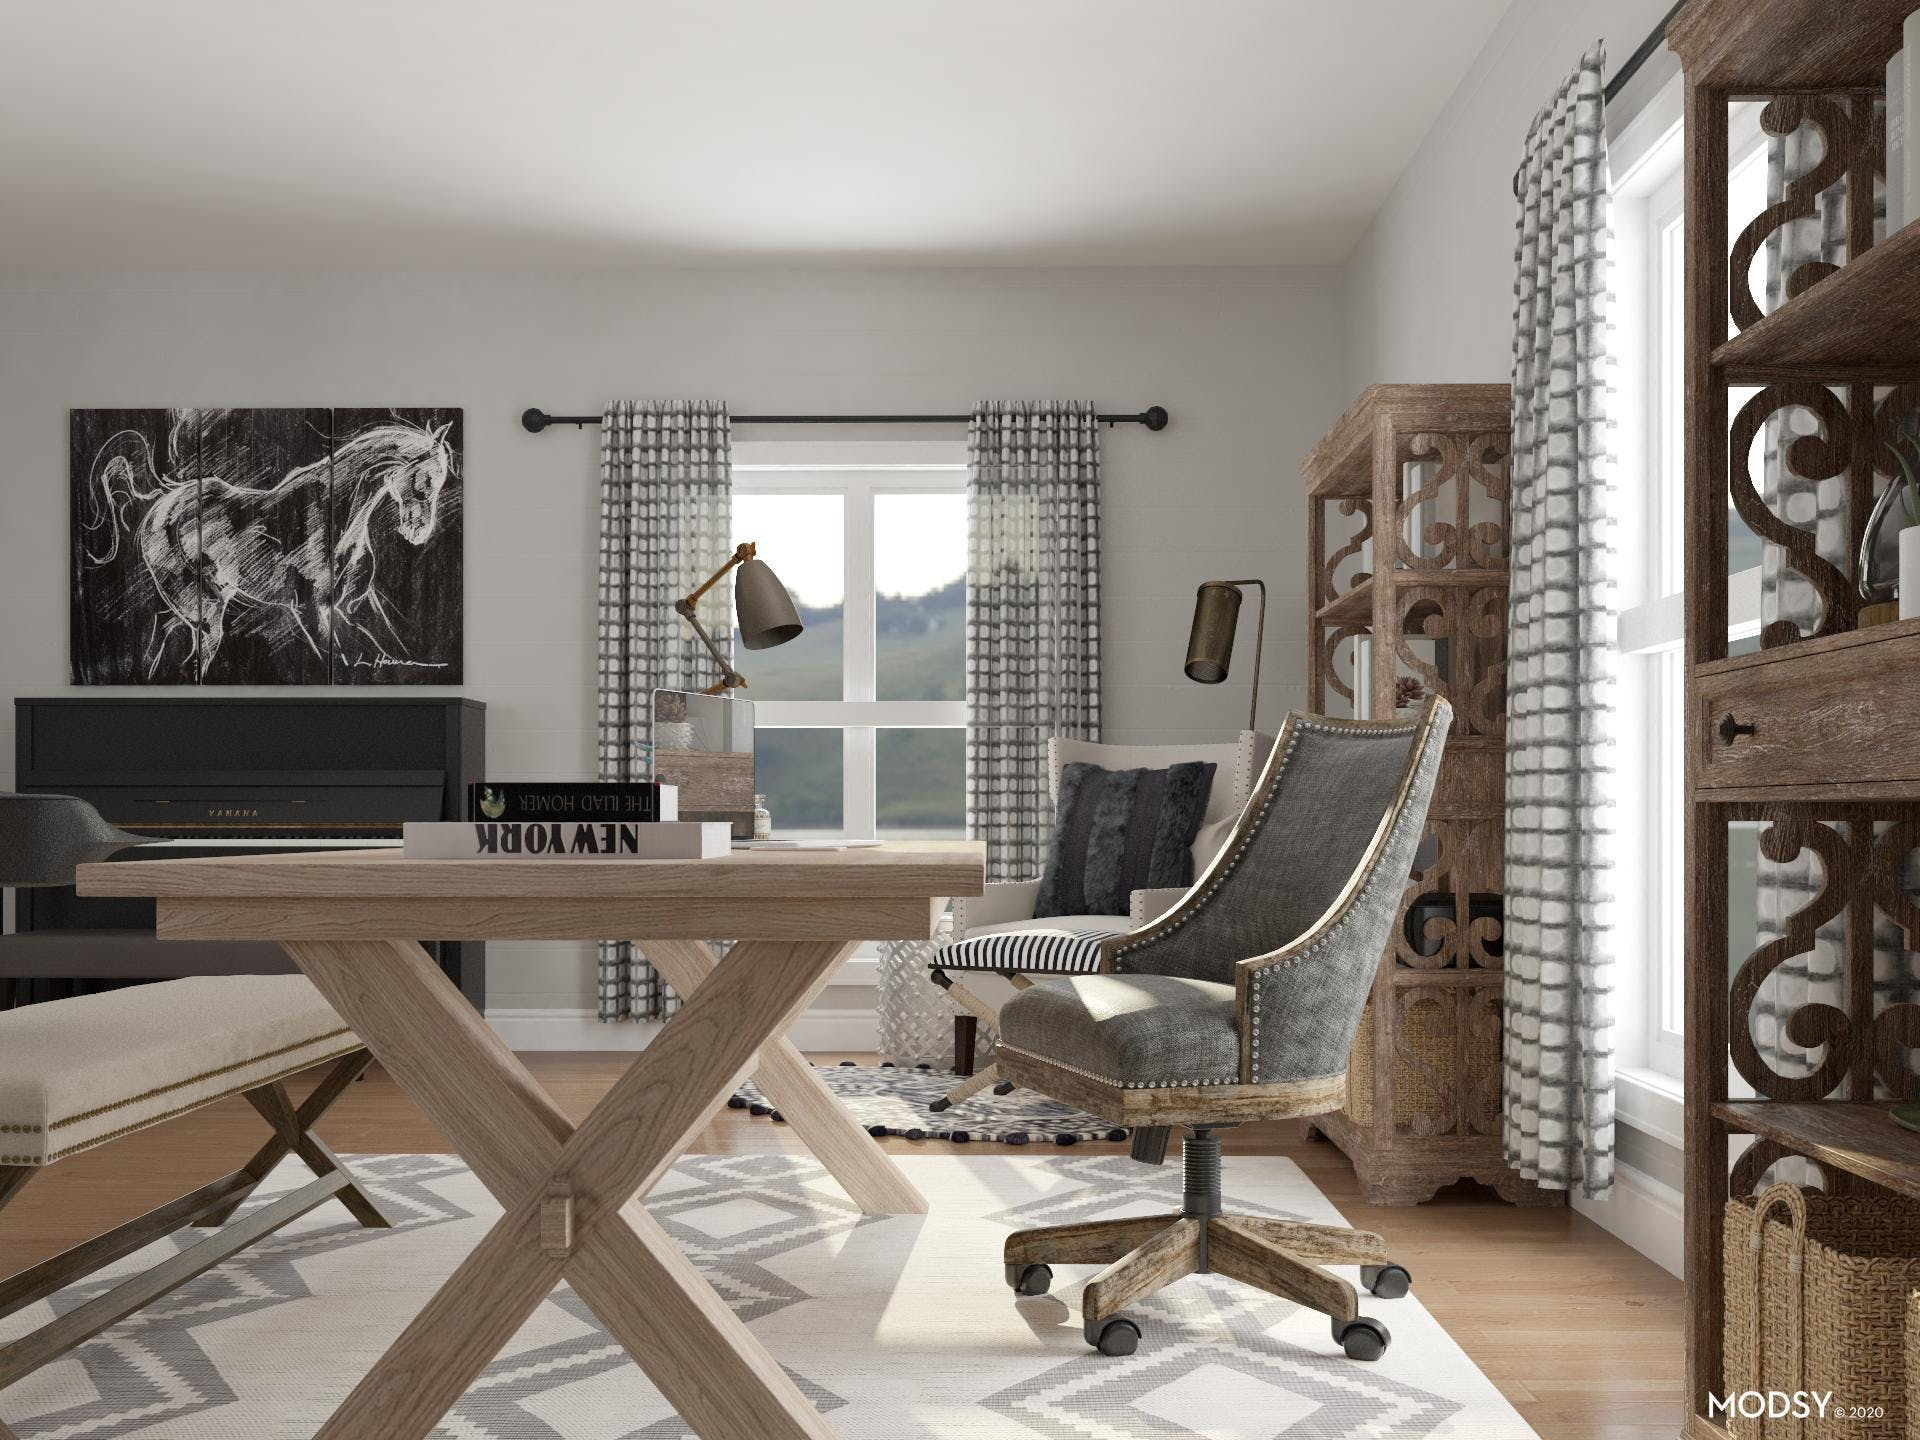 Black & White Color Theme With Wood Tones